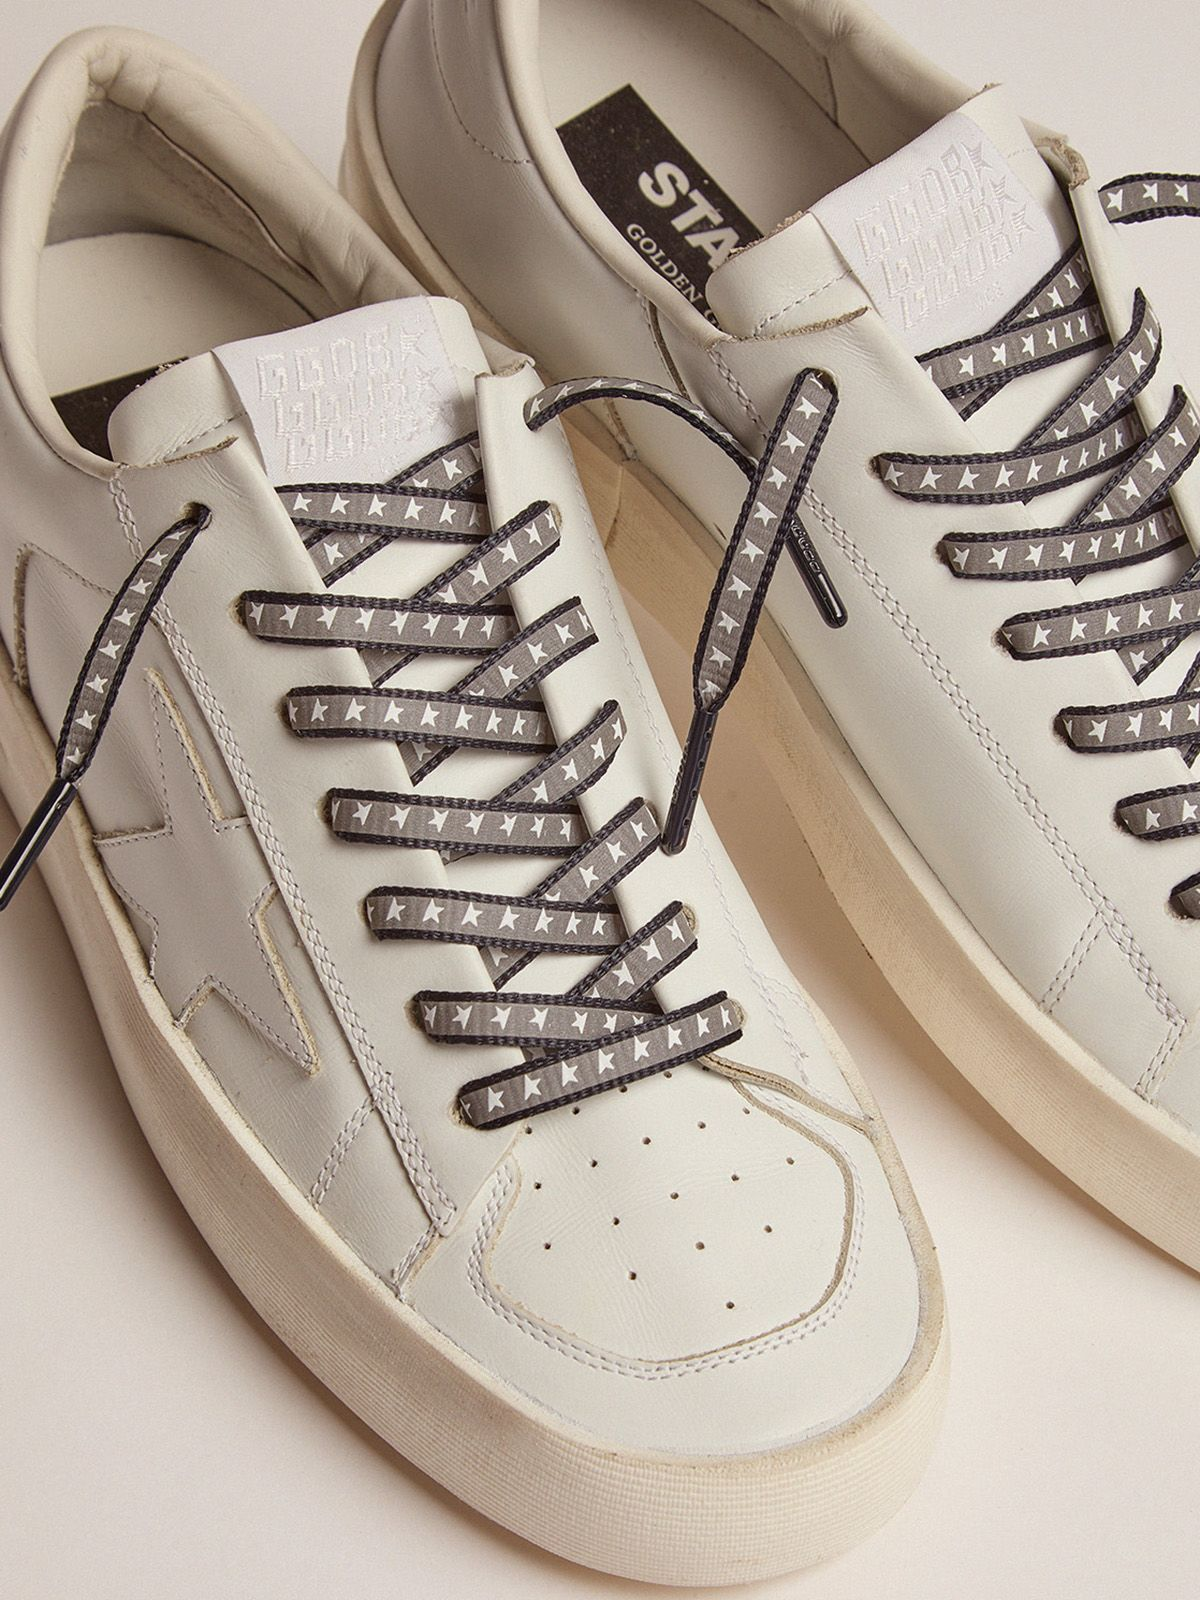 Golden Goose - Men's blue reflective laces with stars in